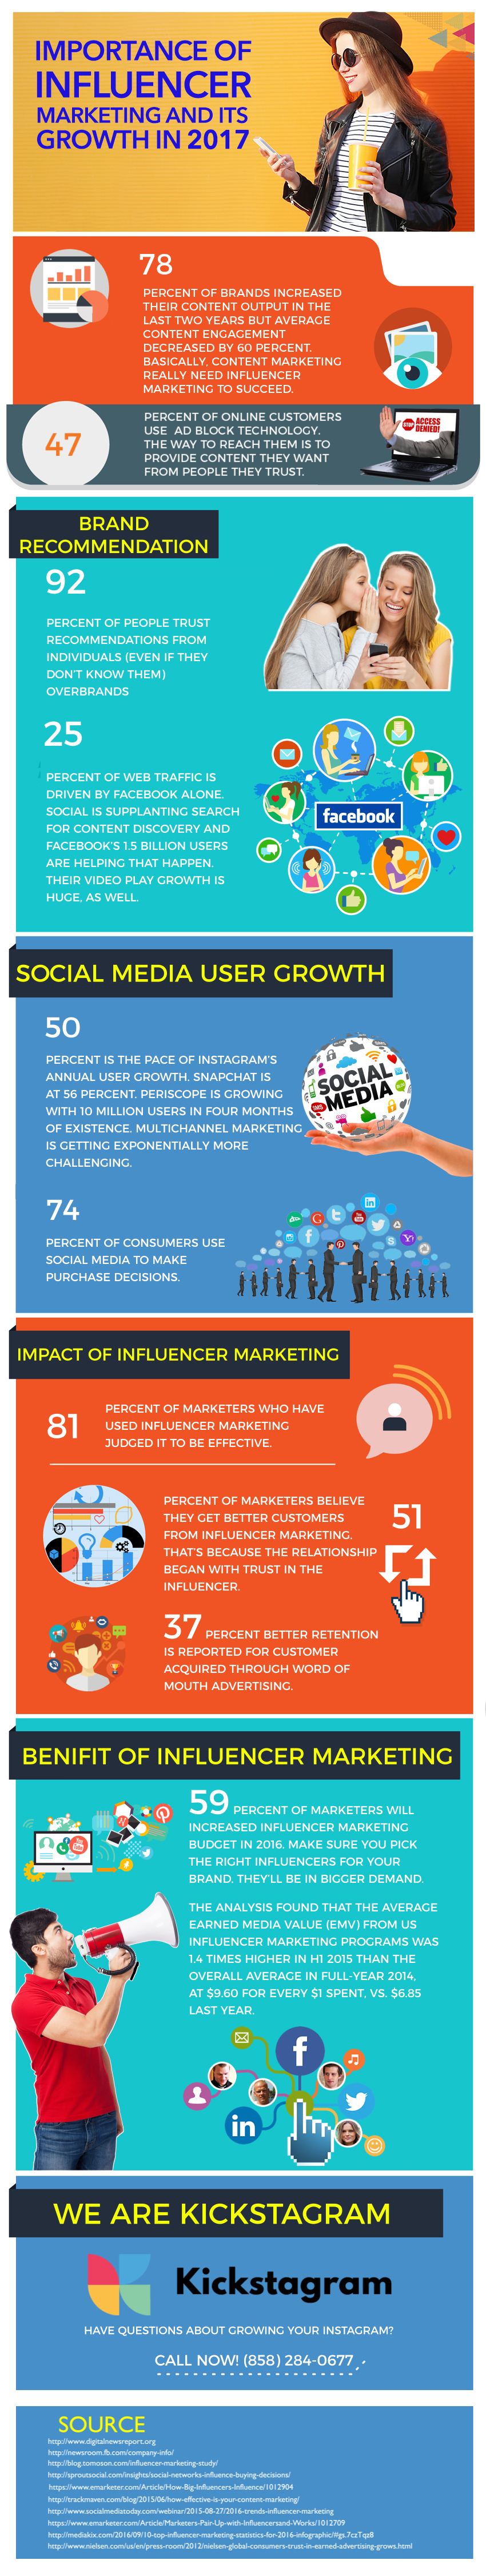 Importance Of Influencer Marketing And Its Growth In 2017